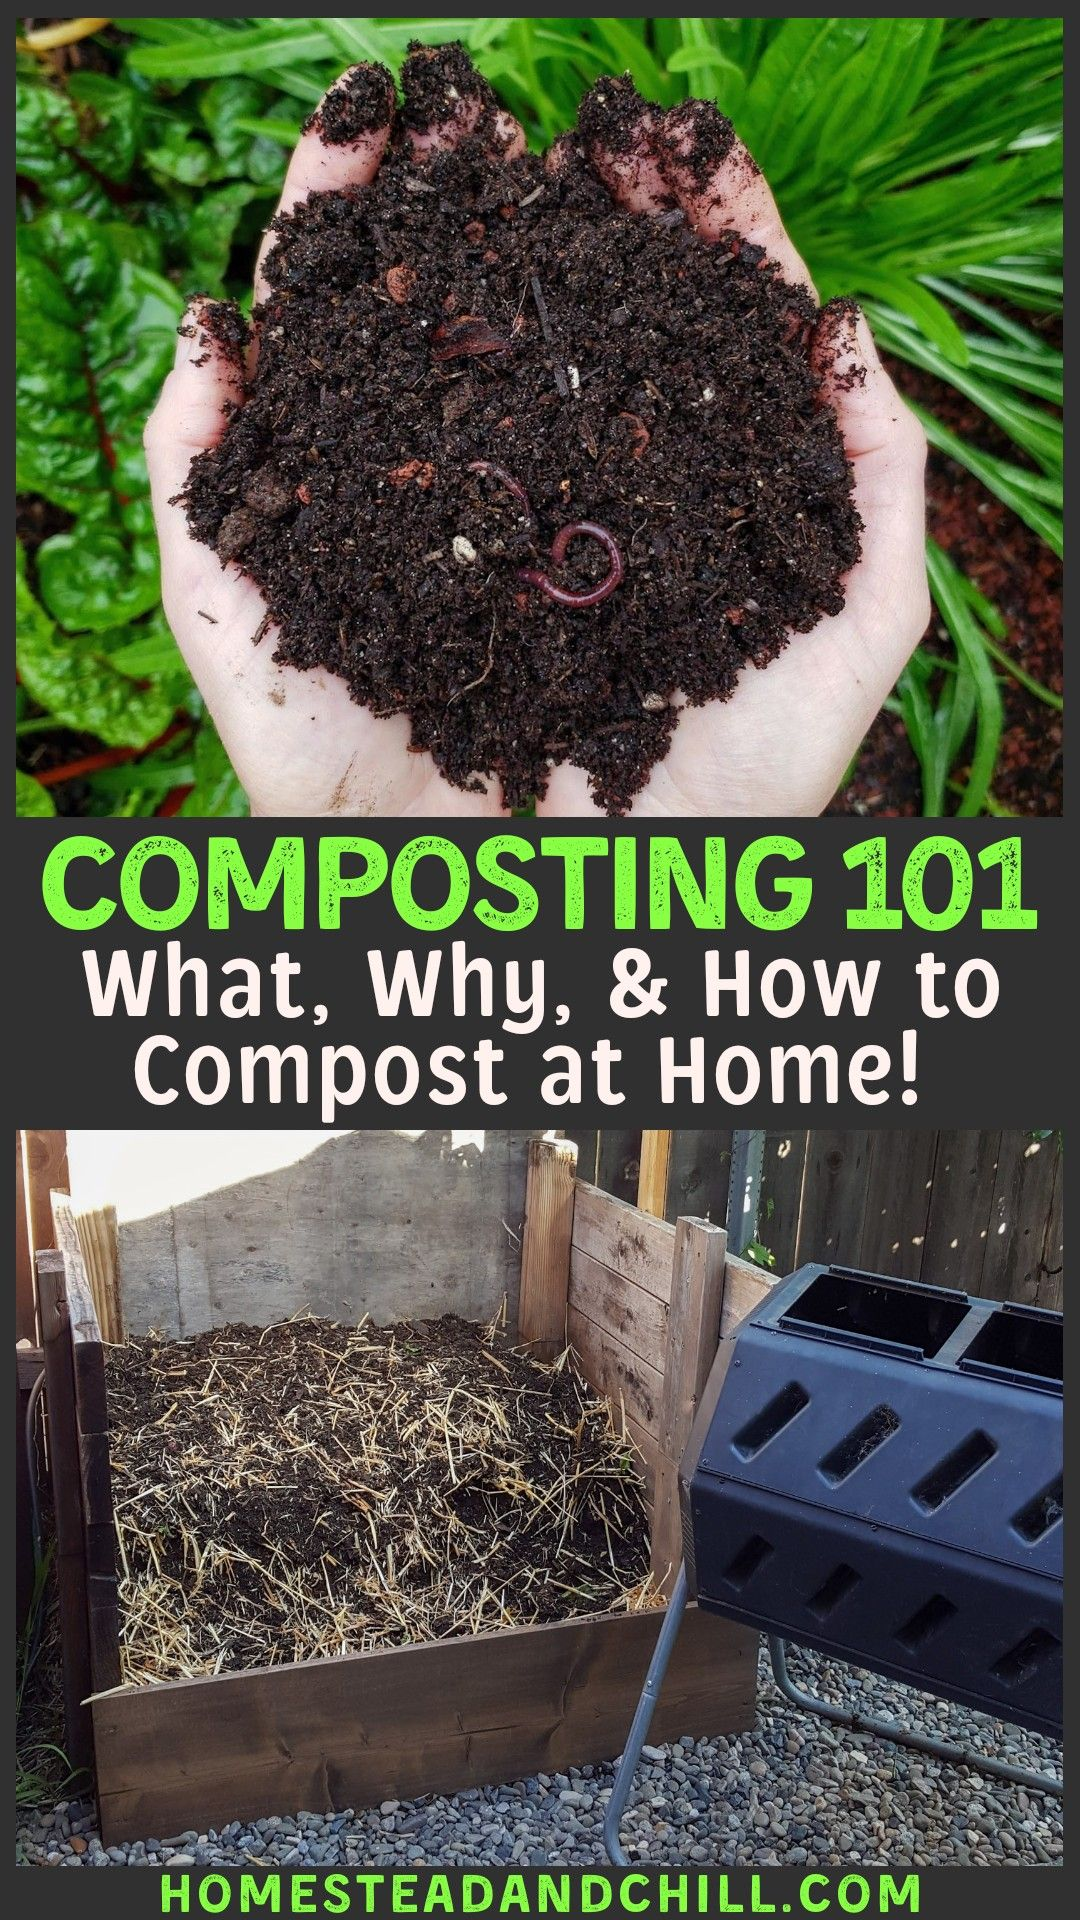 Composting 101 what why how to compost at home